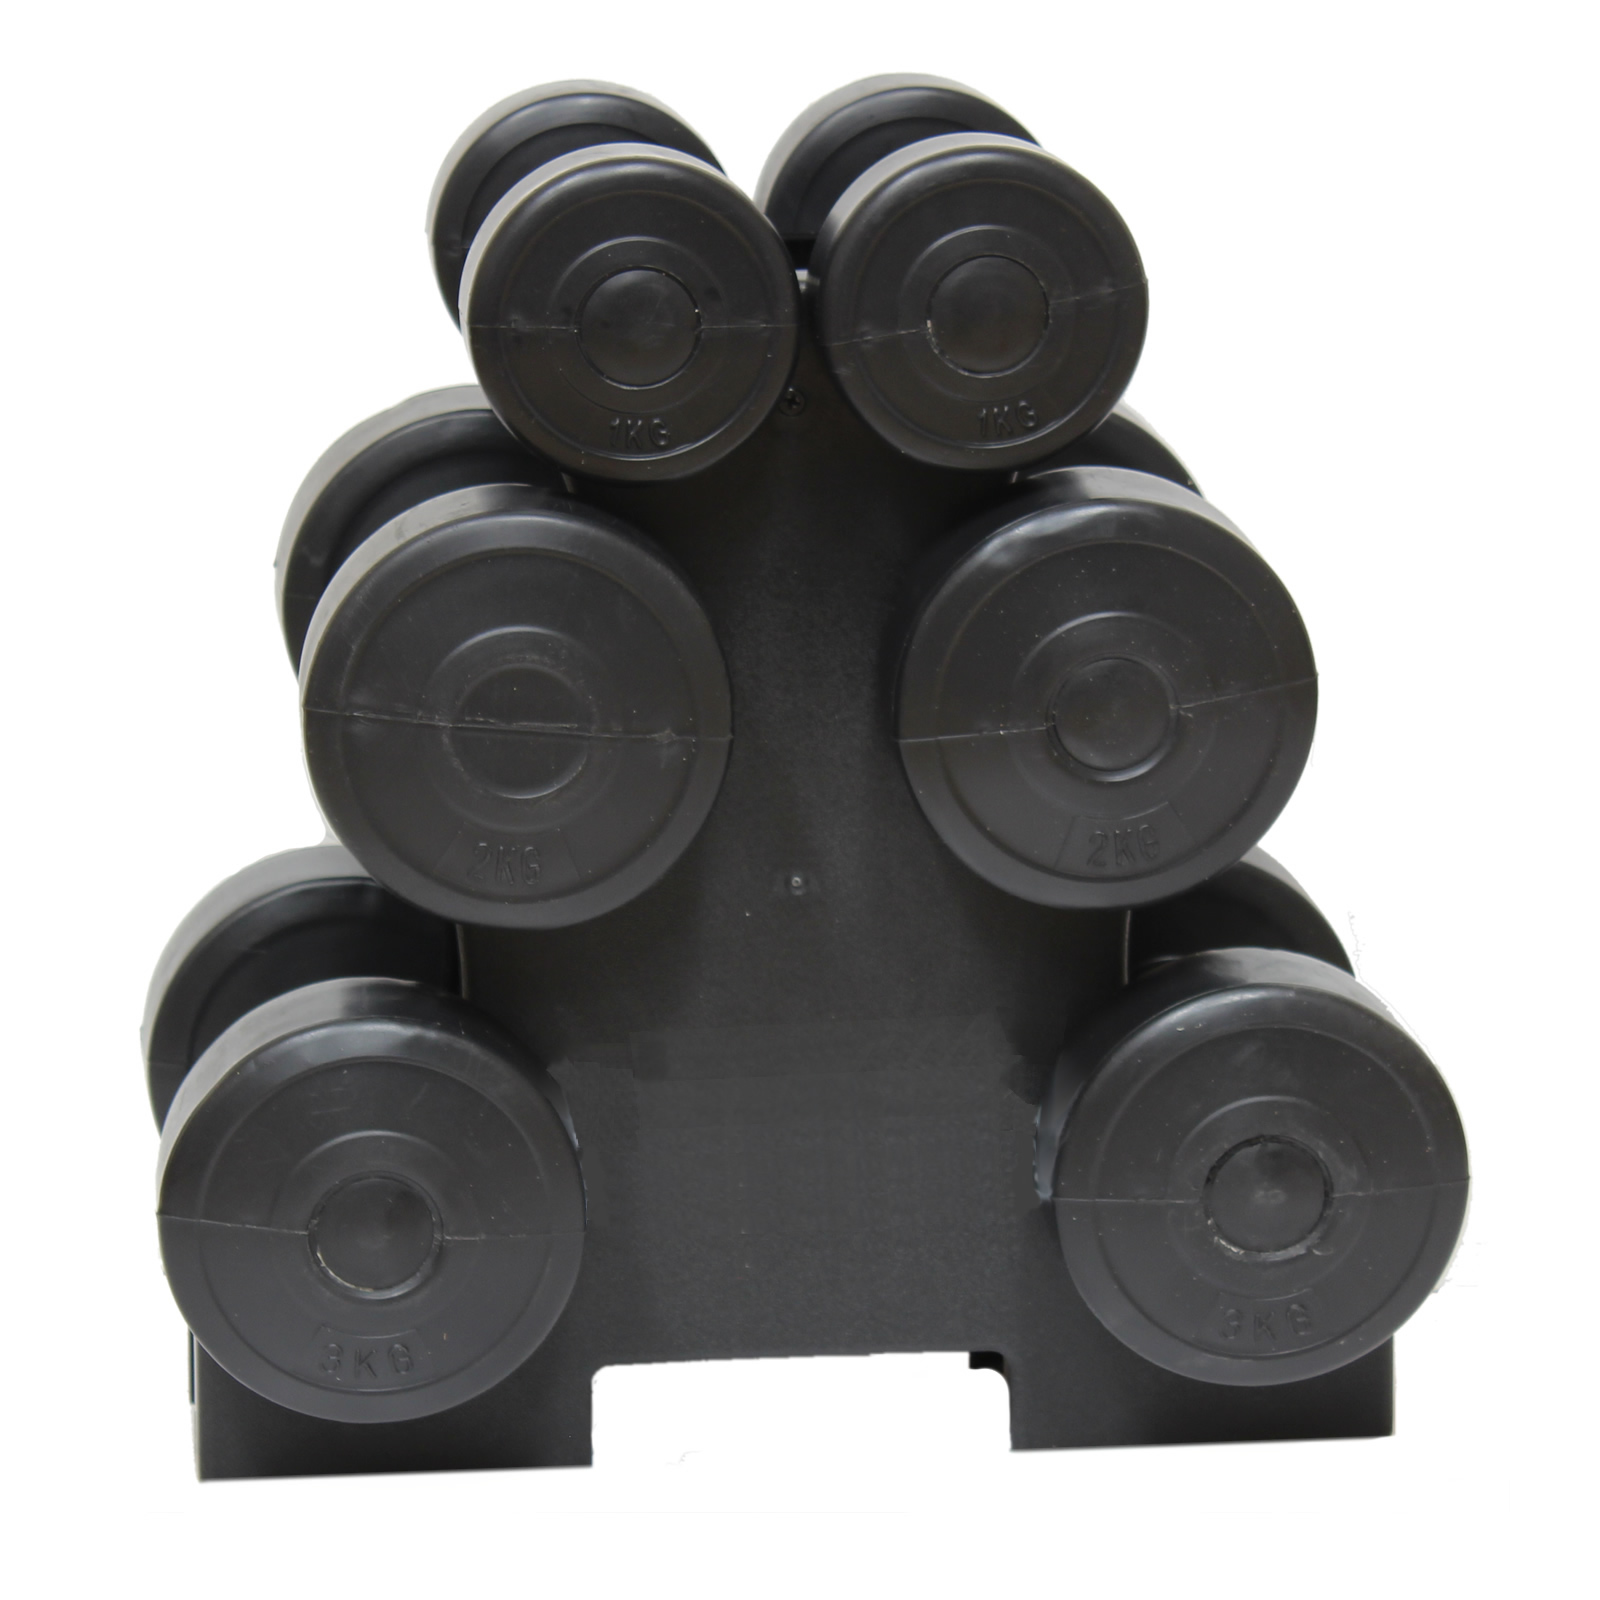 dumbbell weights set stand rack home gym exercise workout weight